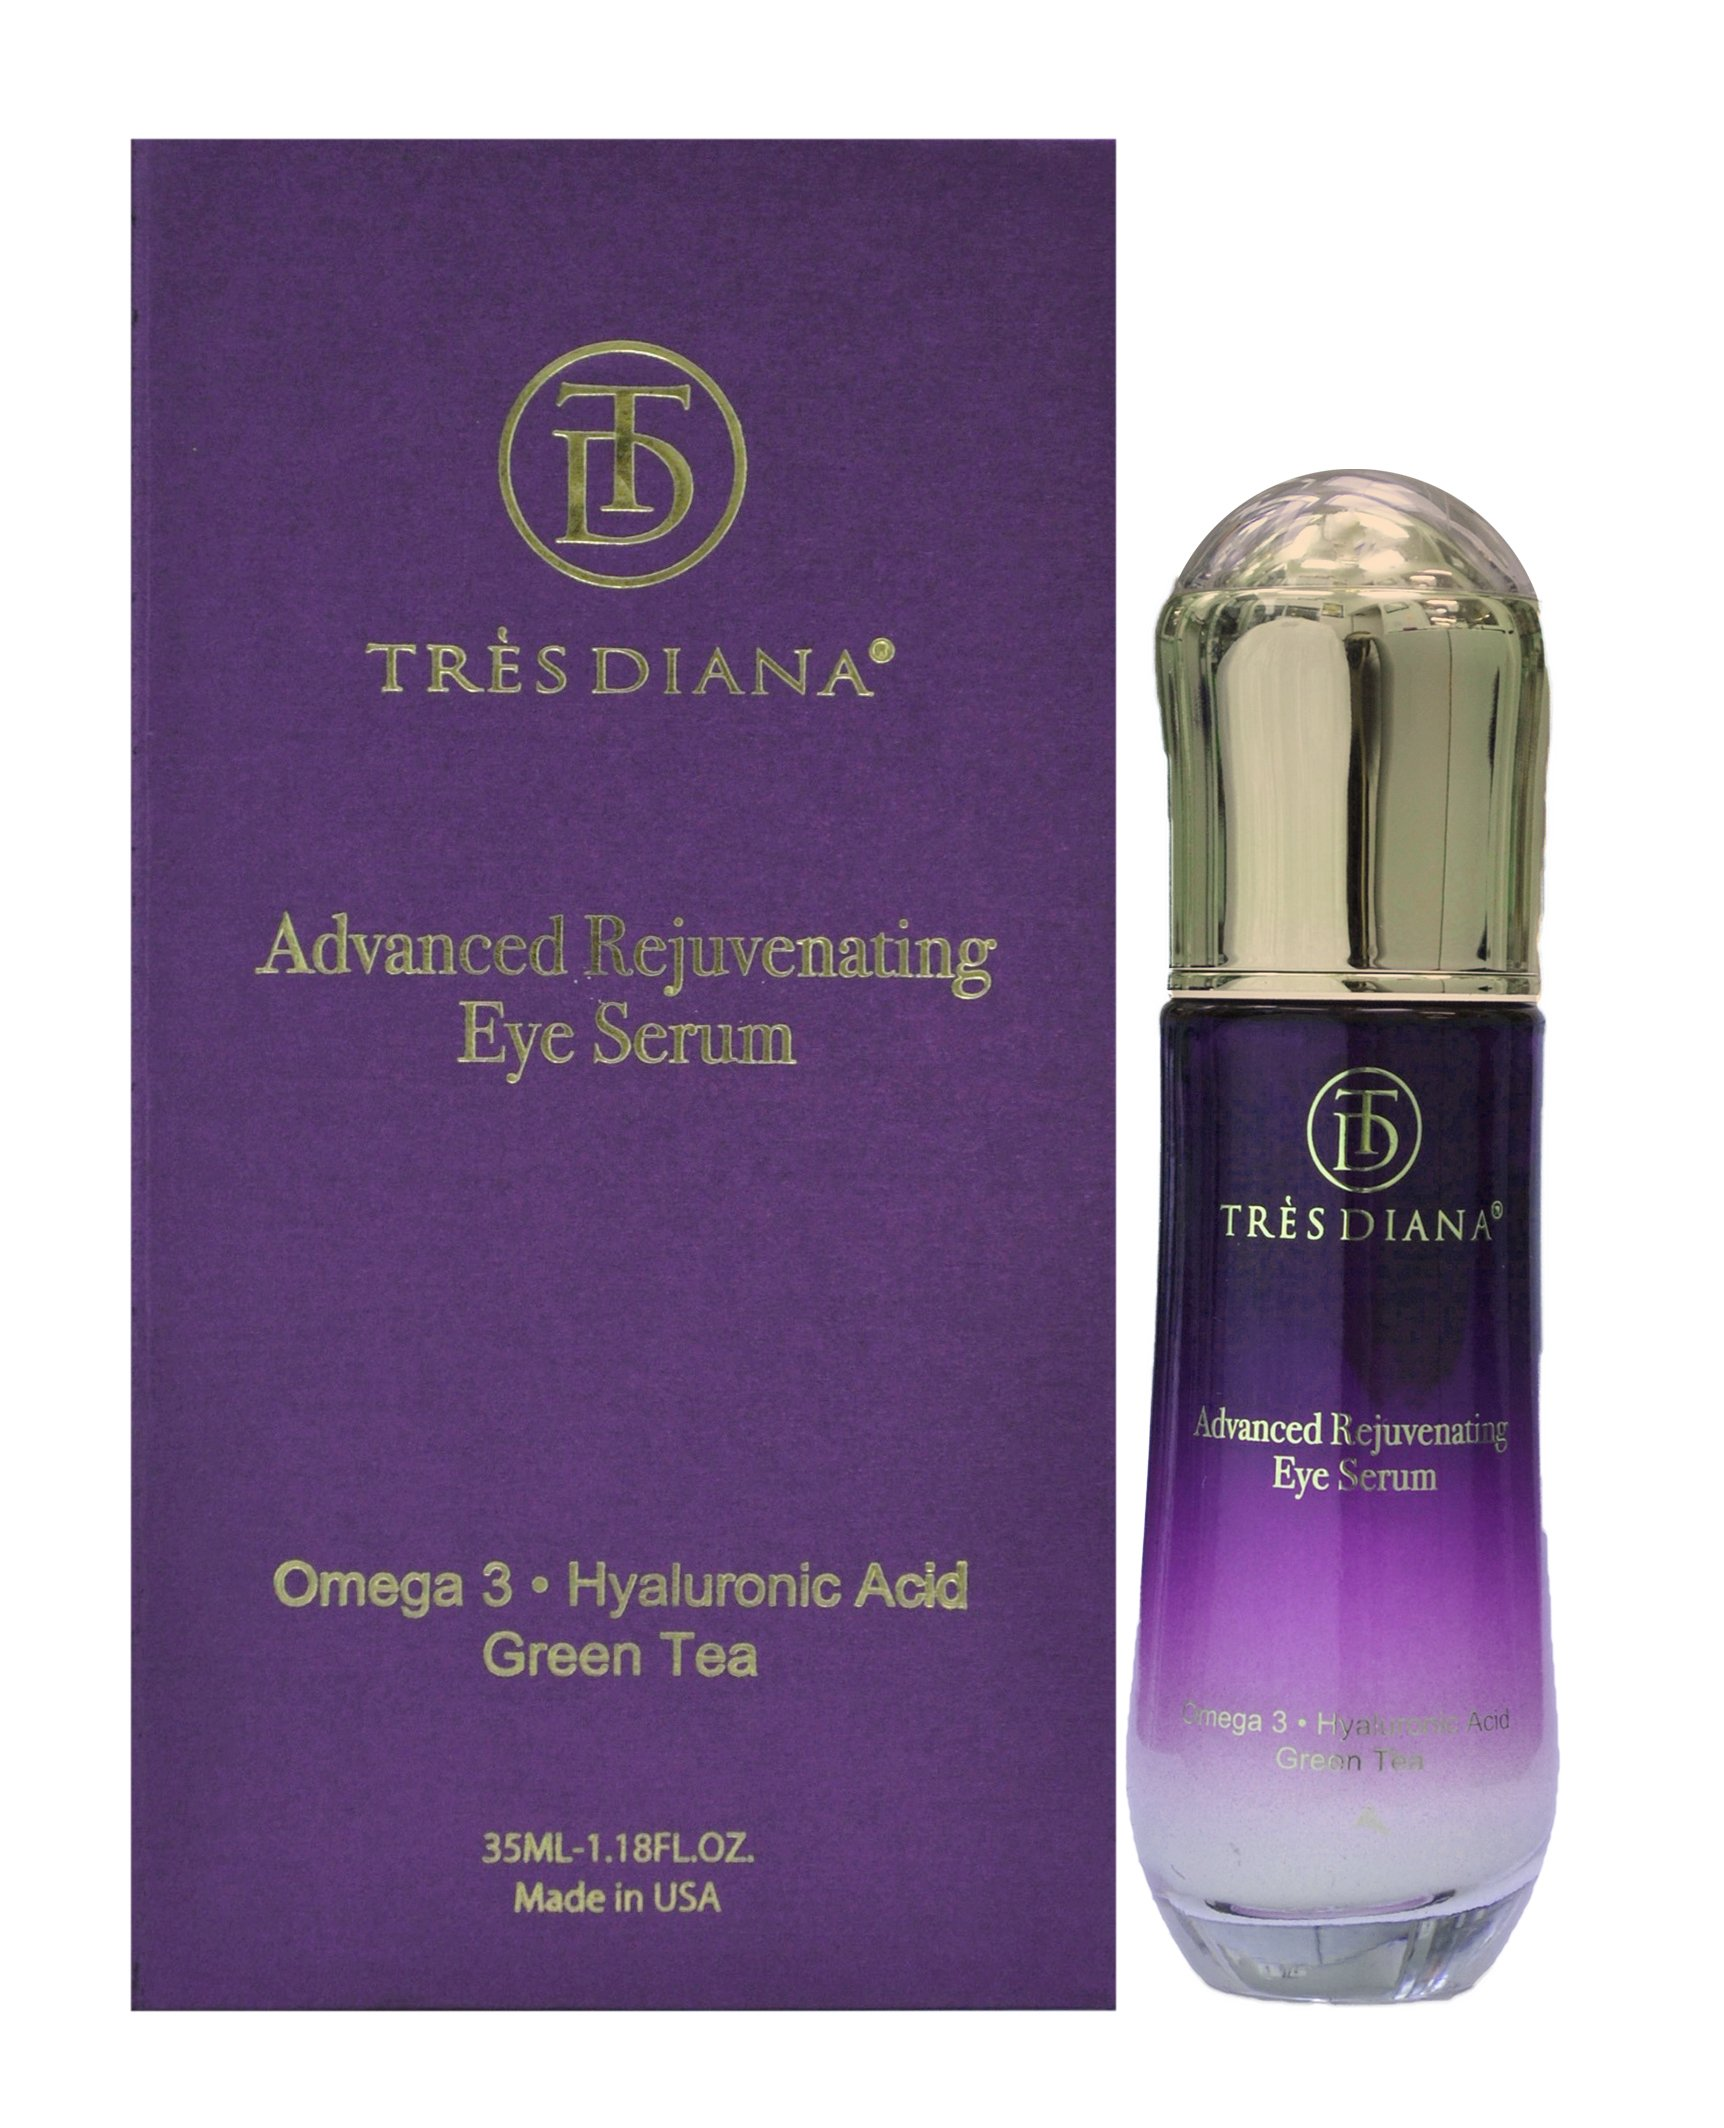 TRÈSDIANA Advanced Rejuvenating Eye Serum to treat Puffiness, Dark Circles, Sagging, Anti-Aging, Wrinkles, Fine Lines, Firming, and Moisturizing for Men and Women. (35 ml 1.18 f. oz) Made in USA!